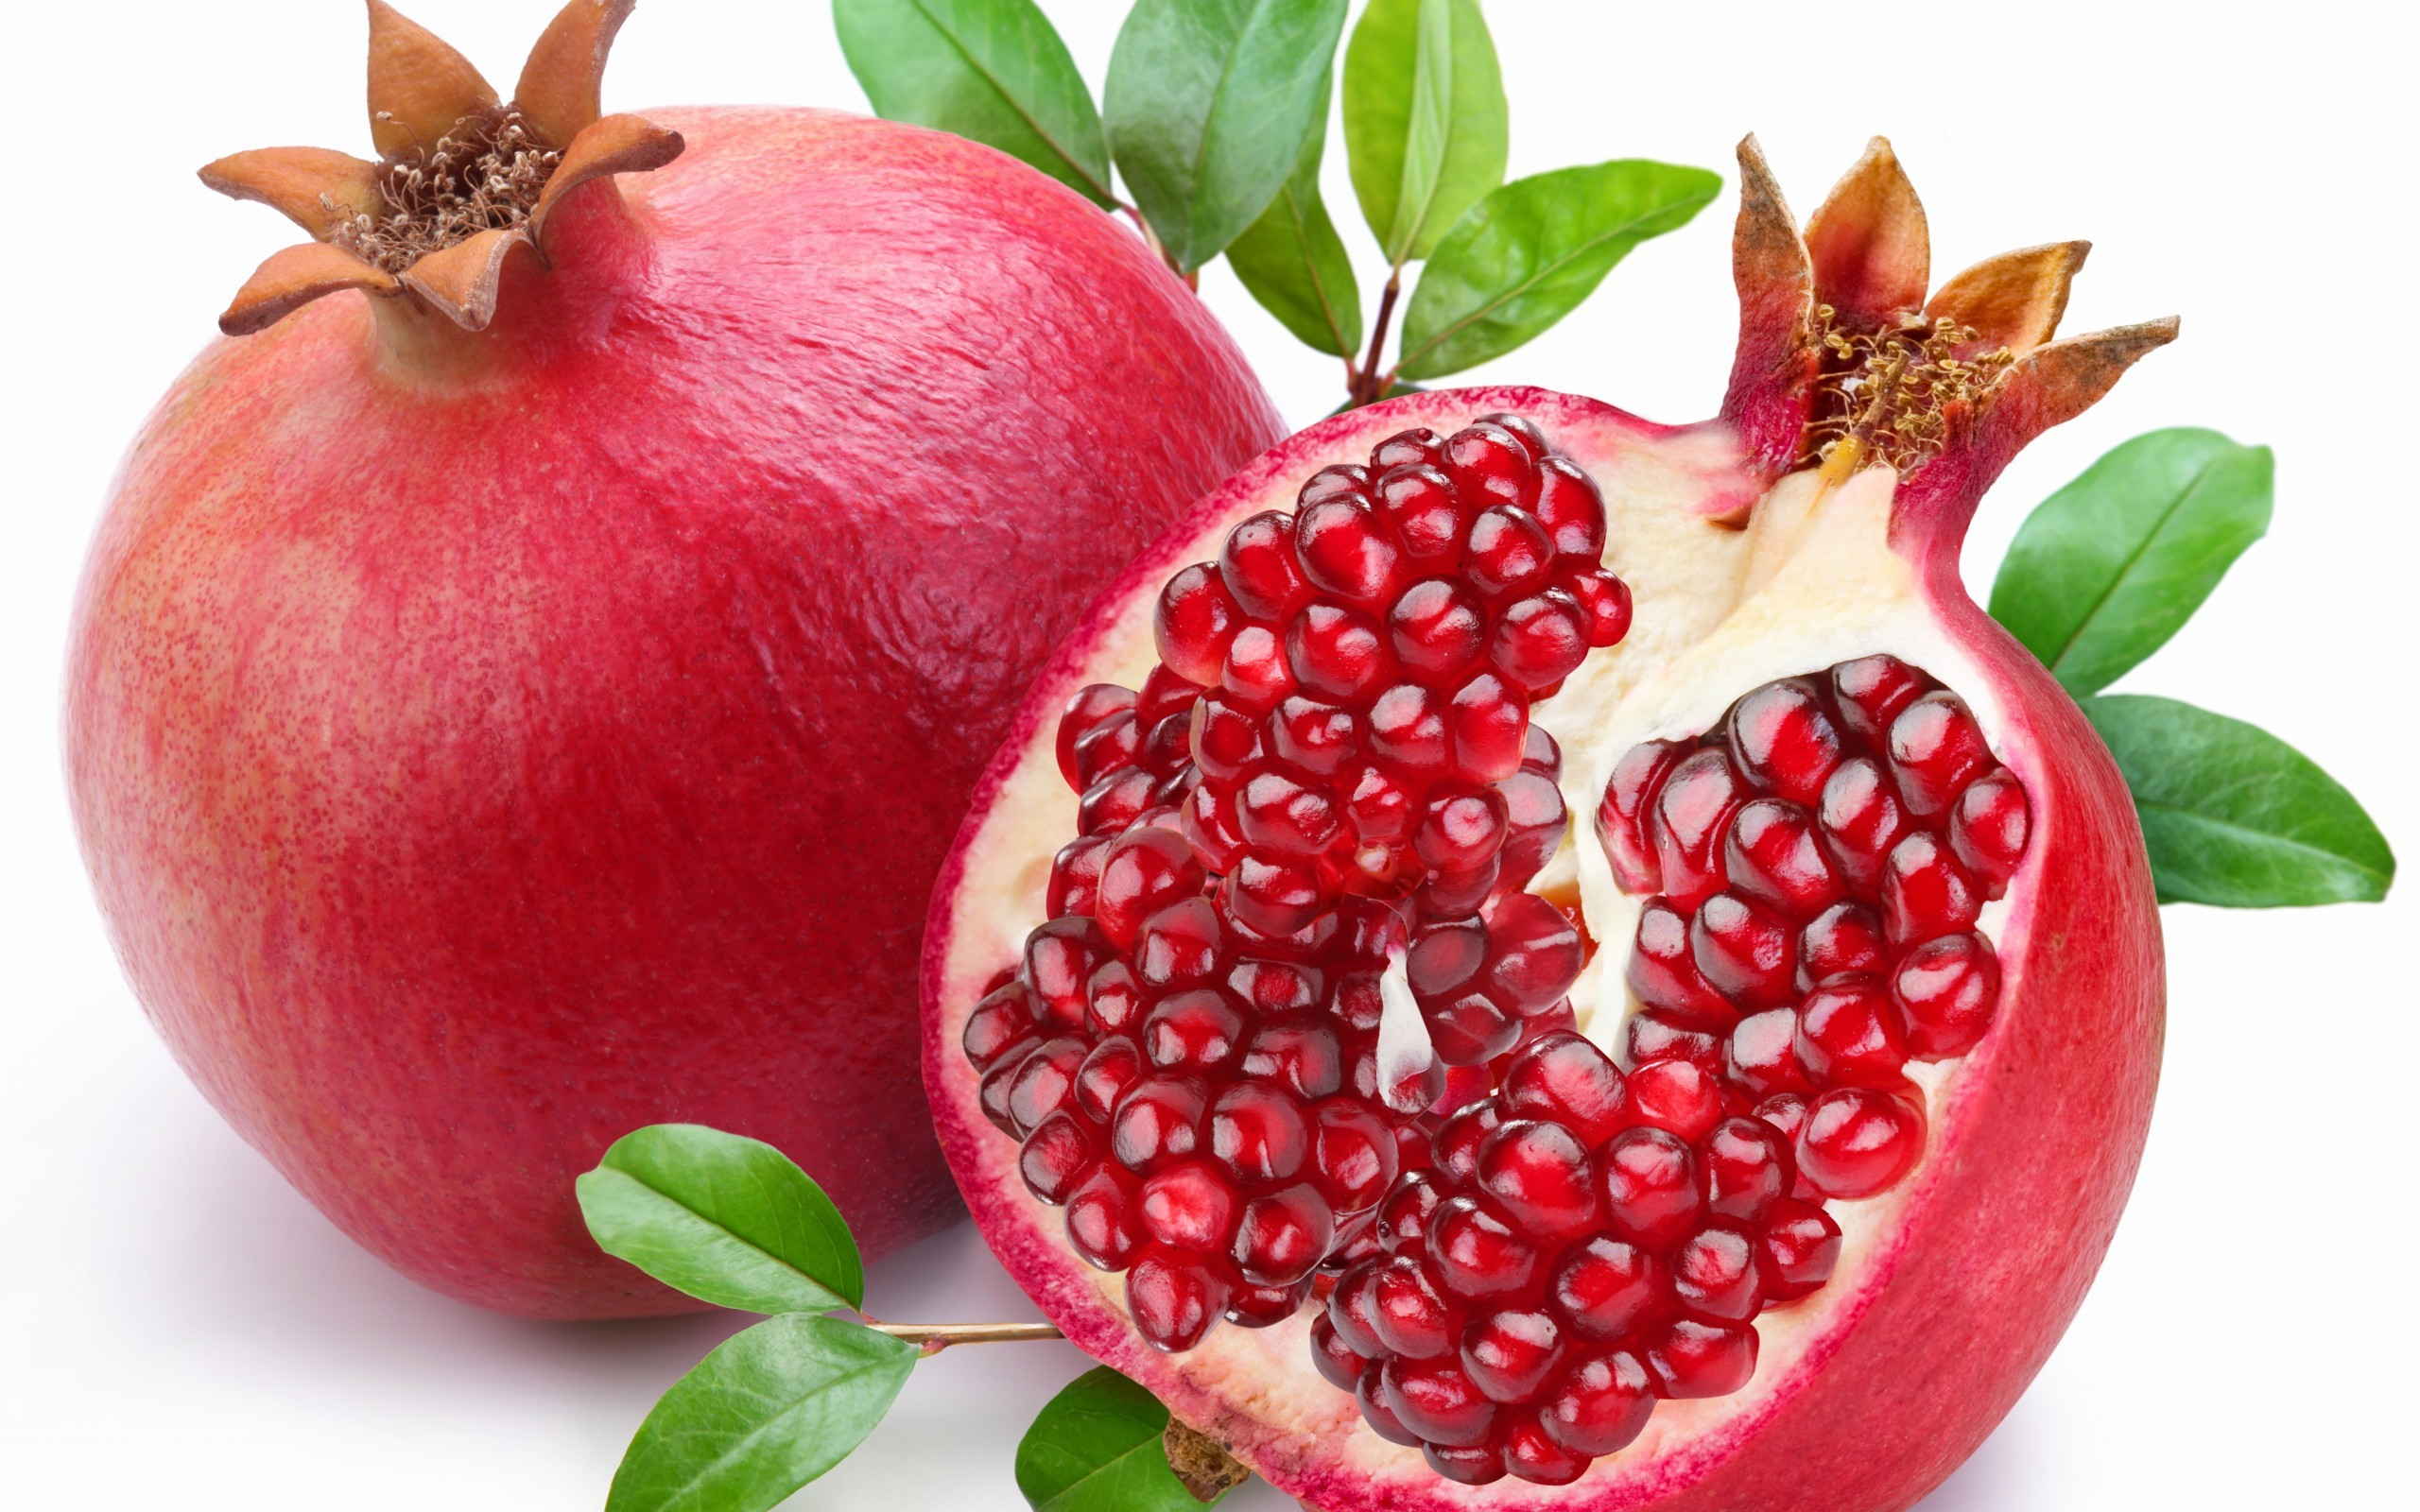 original wallpaper download: Pomegranate fruit - 2560x1600